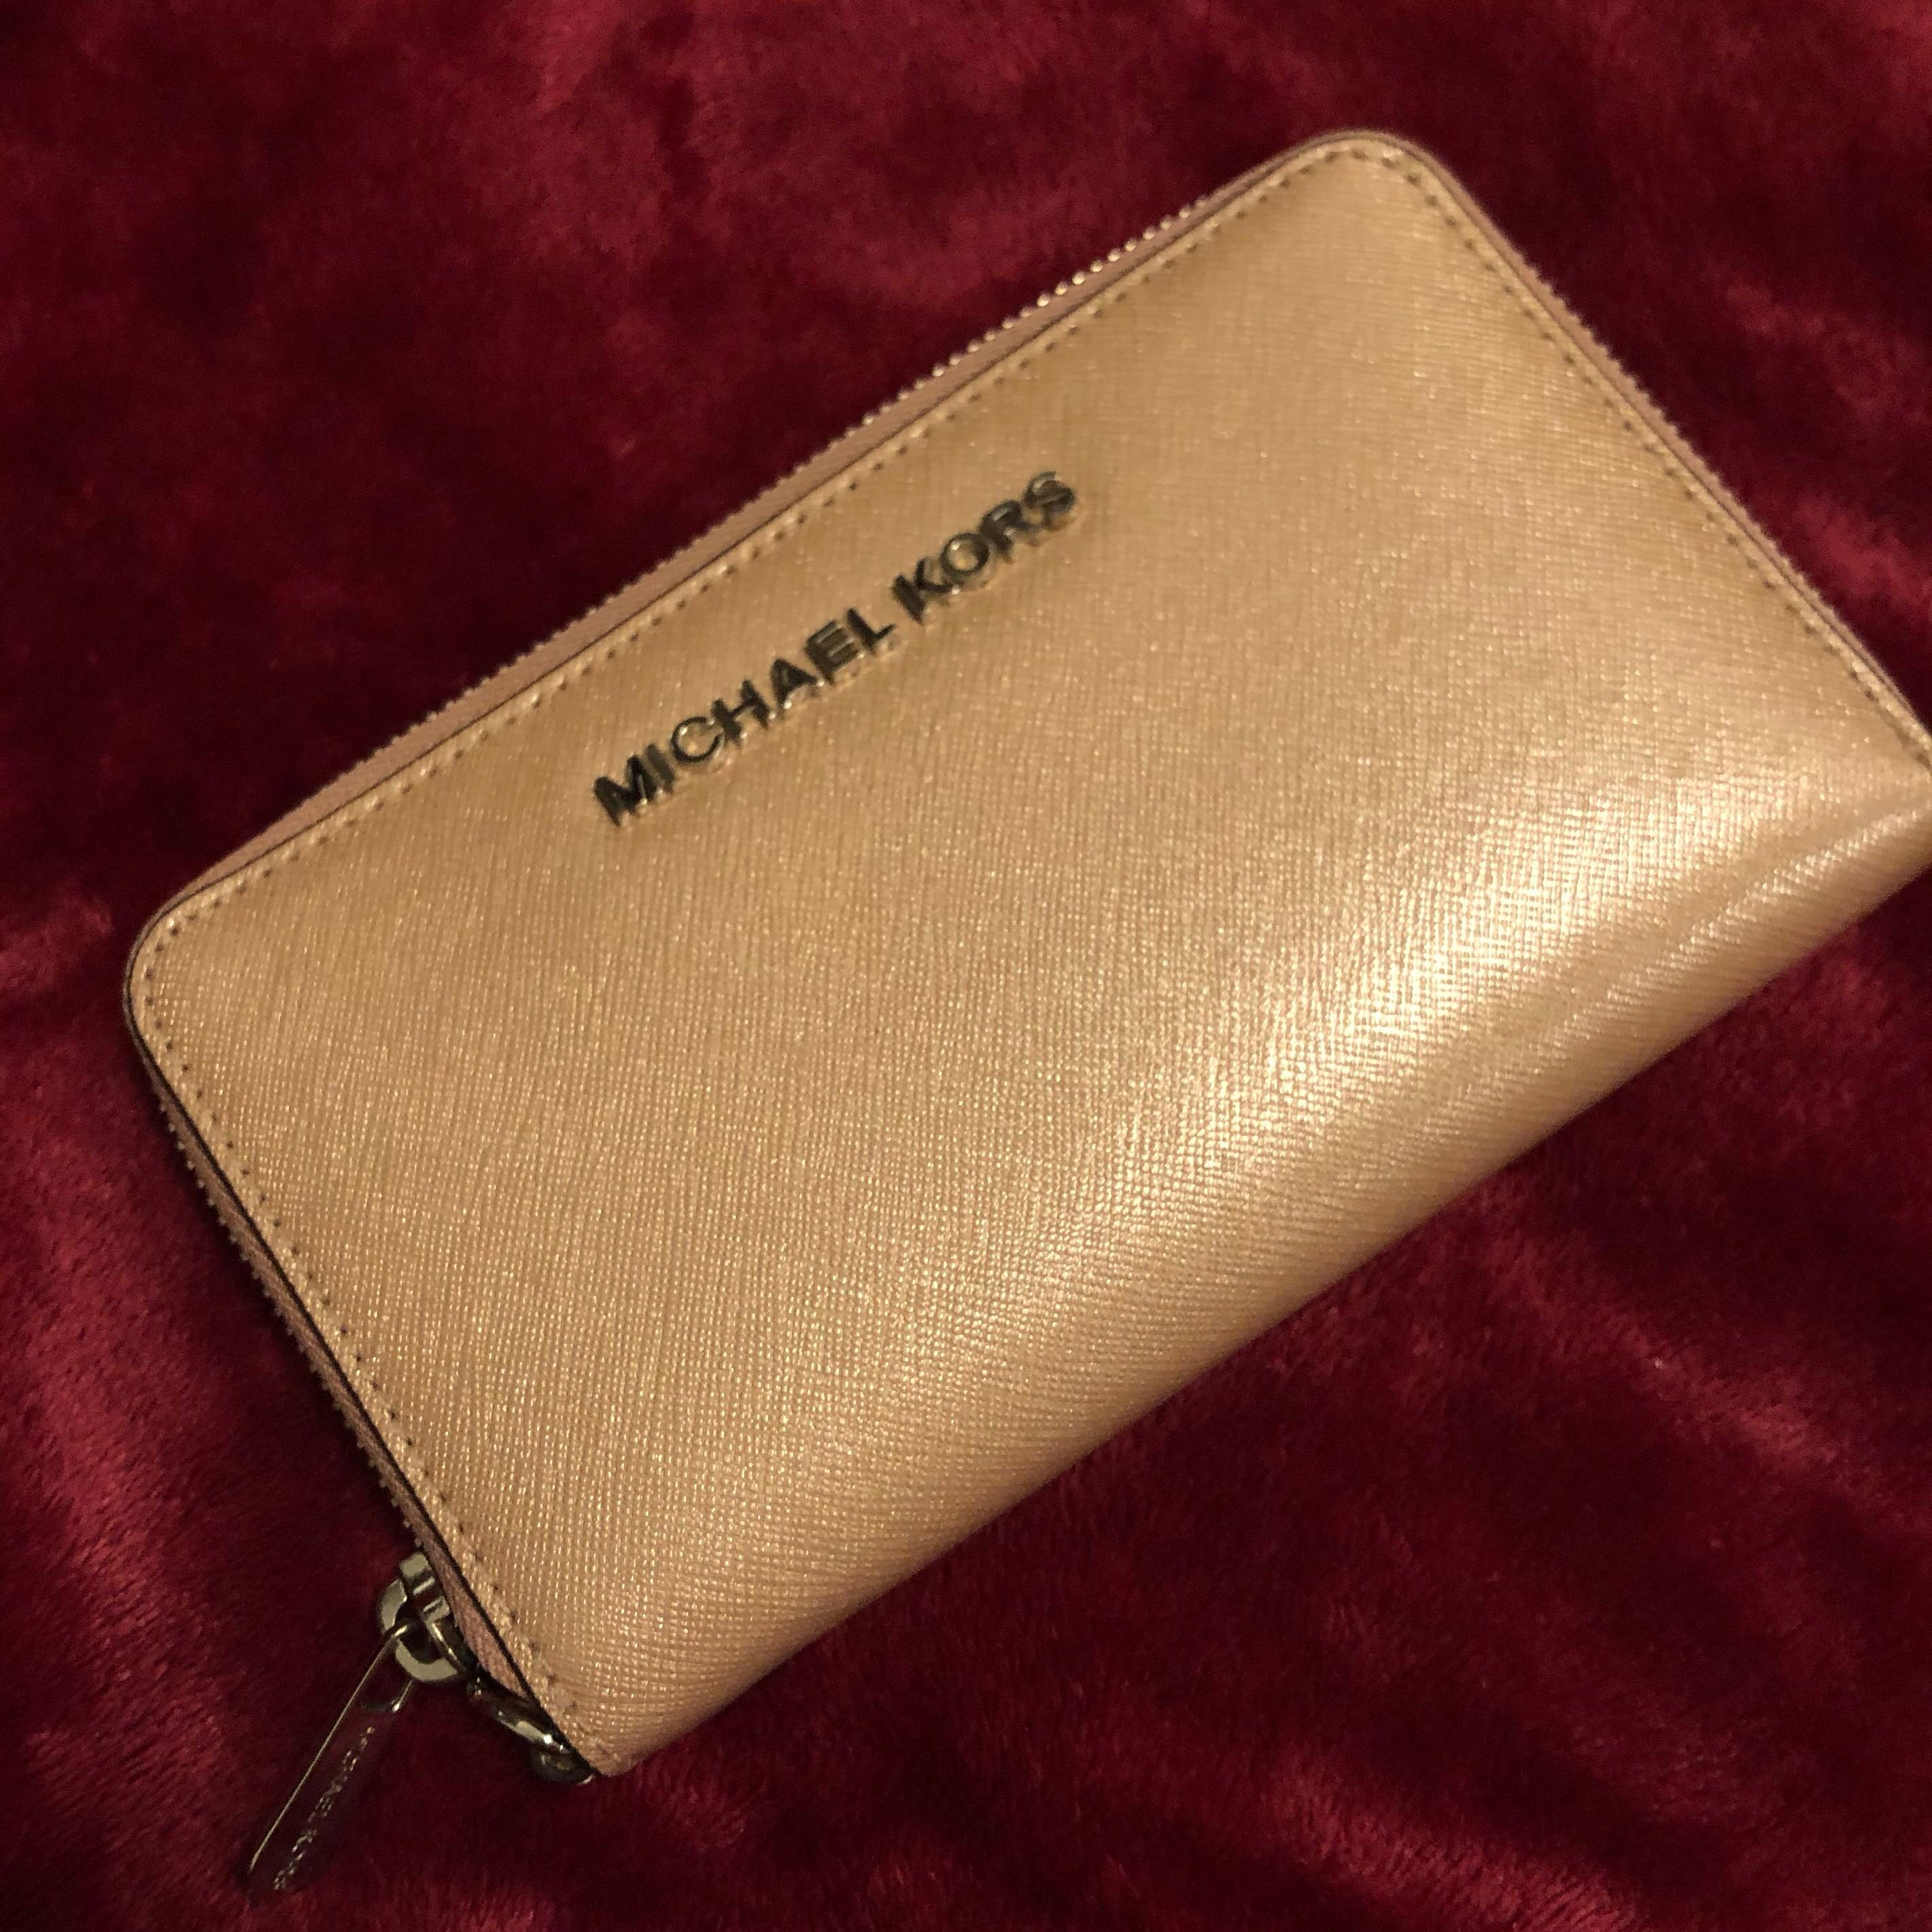 fffc1842f489 New 10/10 Pink Jet Set Travel slim Michael Kors Wallet, Women's ...